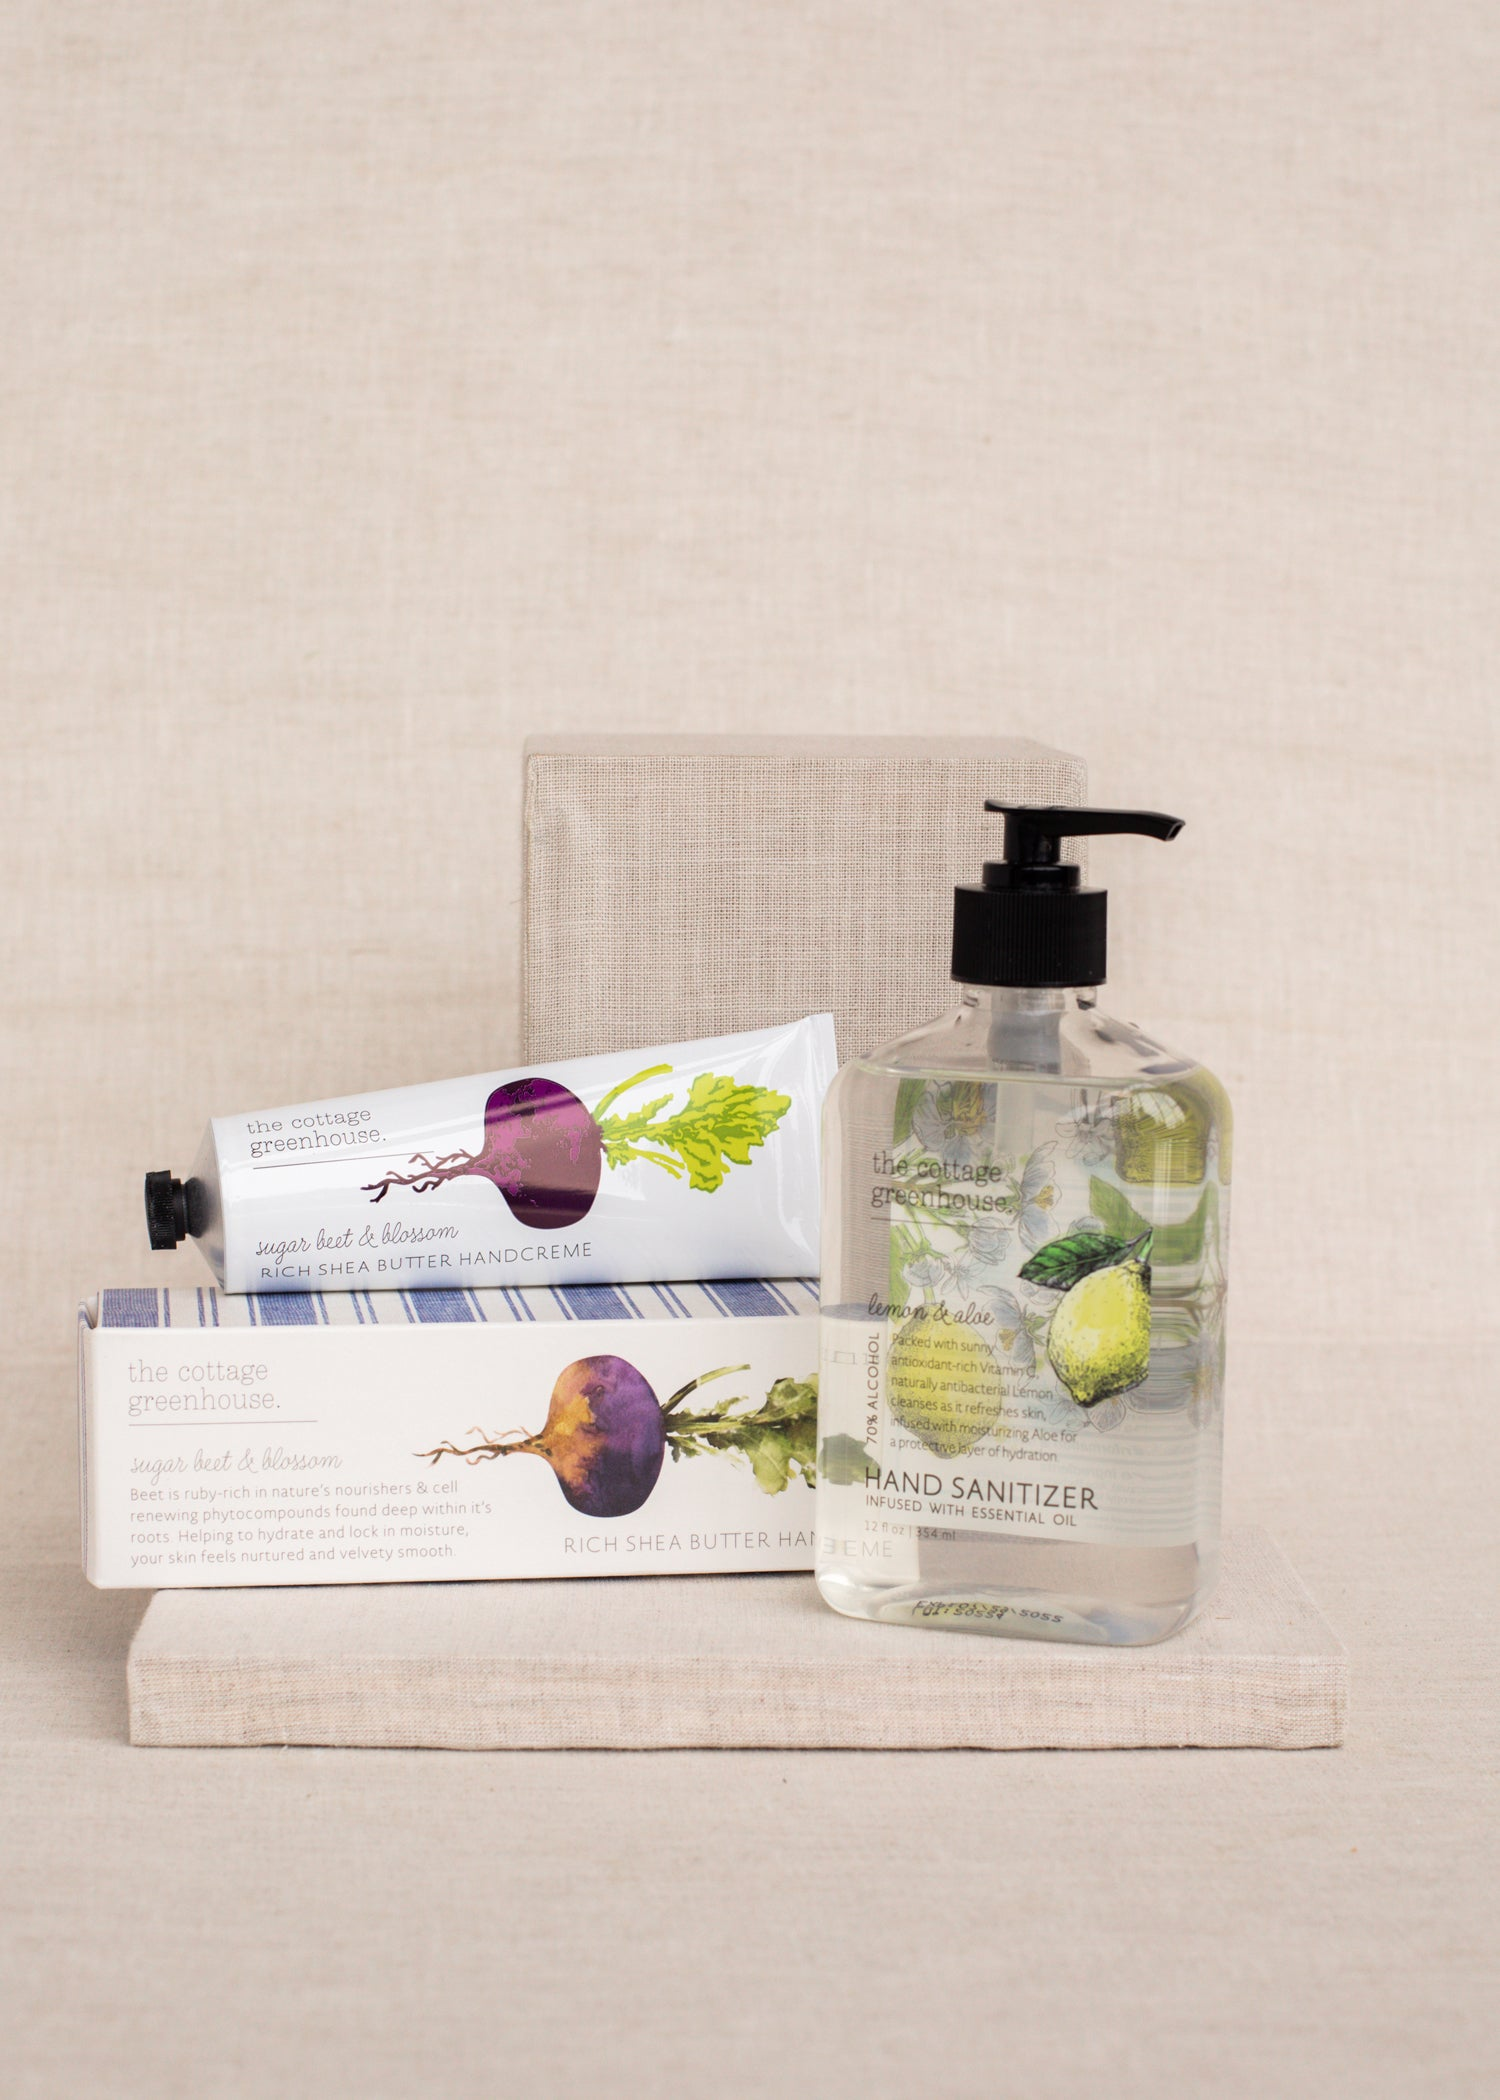 Lemon & Aloe Hand Sanitizer + Sugar Beet & Blossom Handcreme Duo